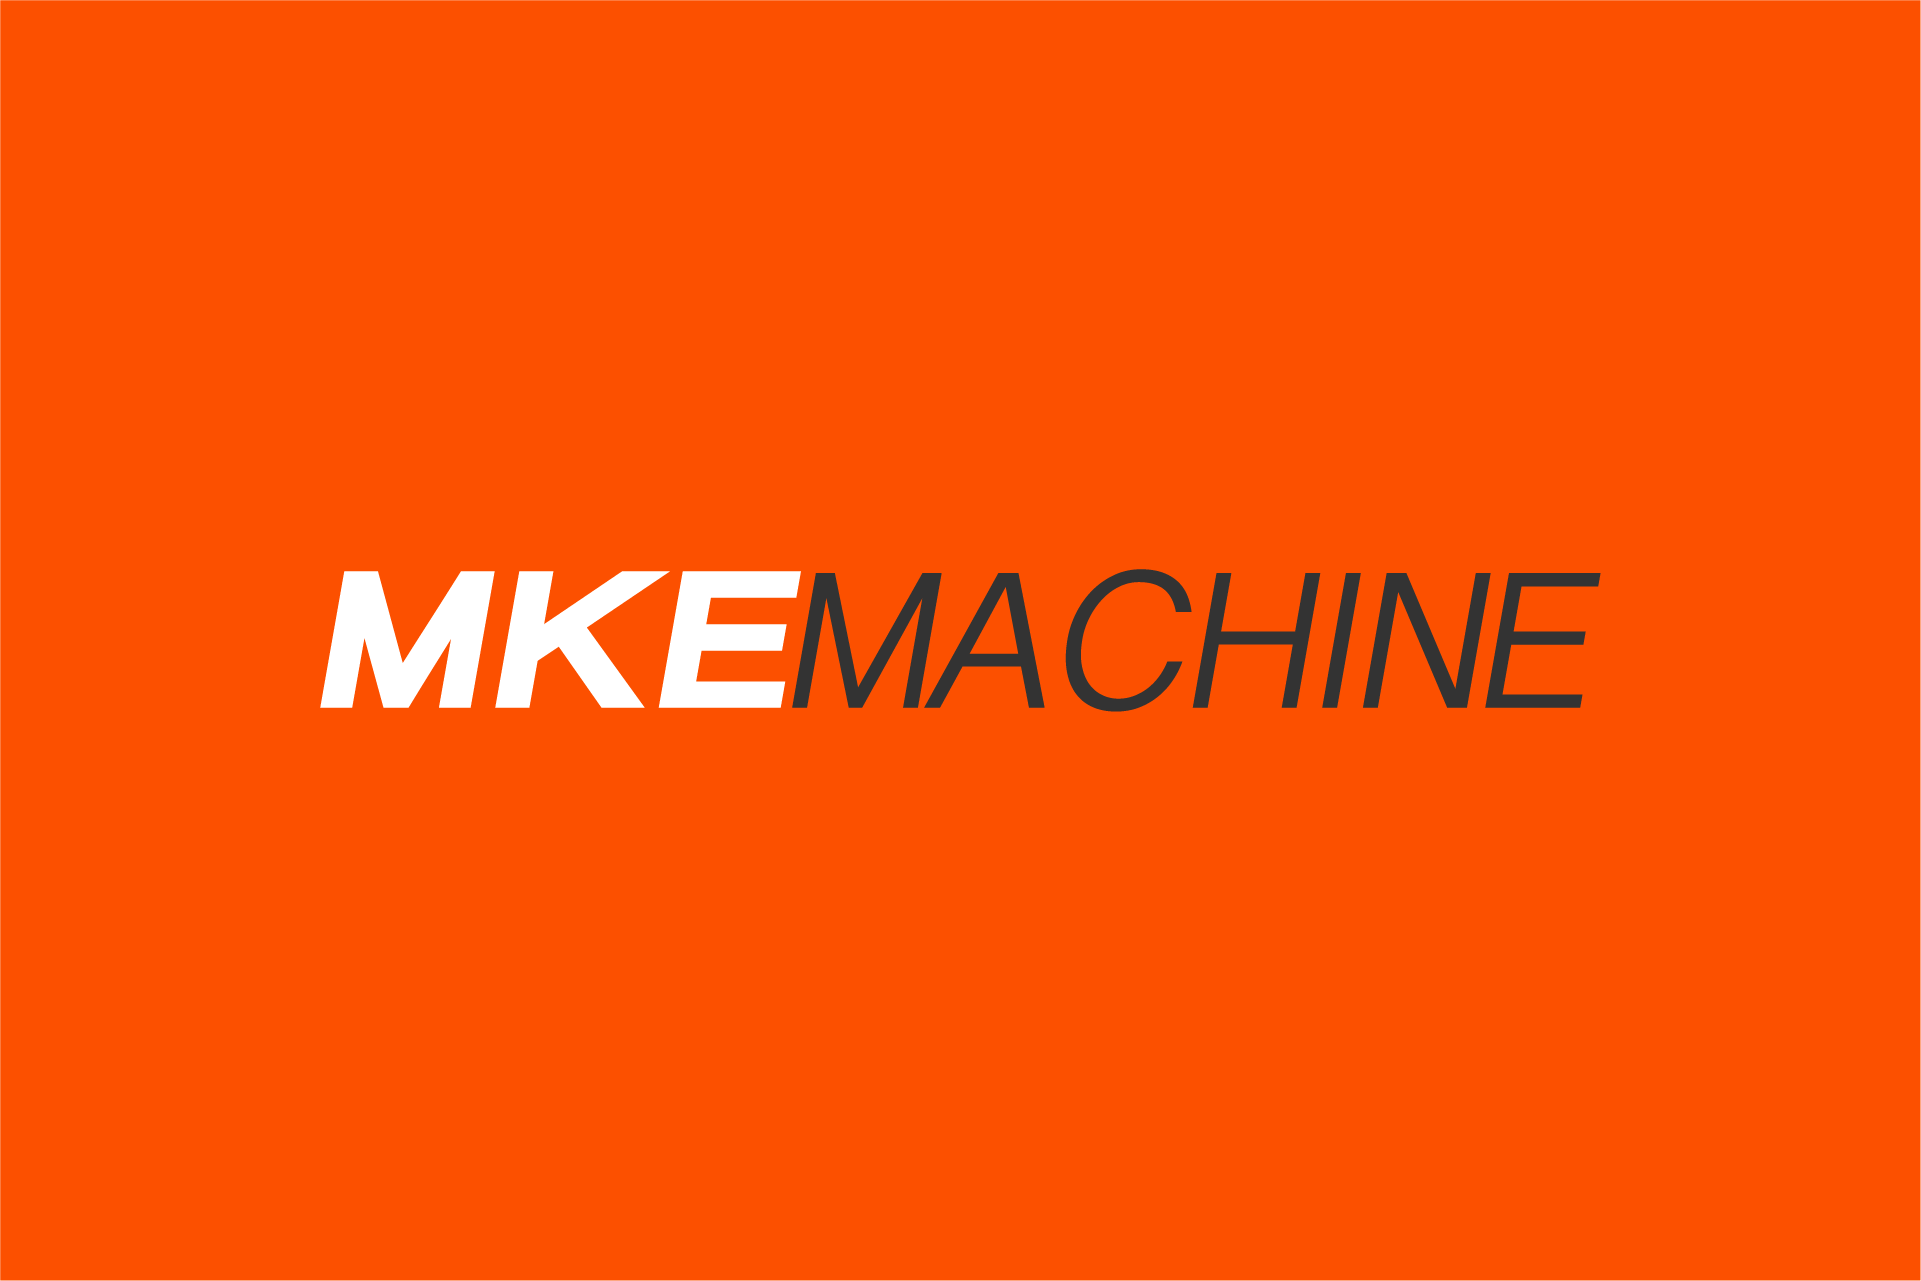 MKE Machine Logo Design Color Theory 7